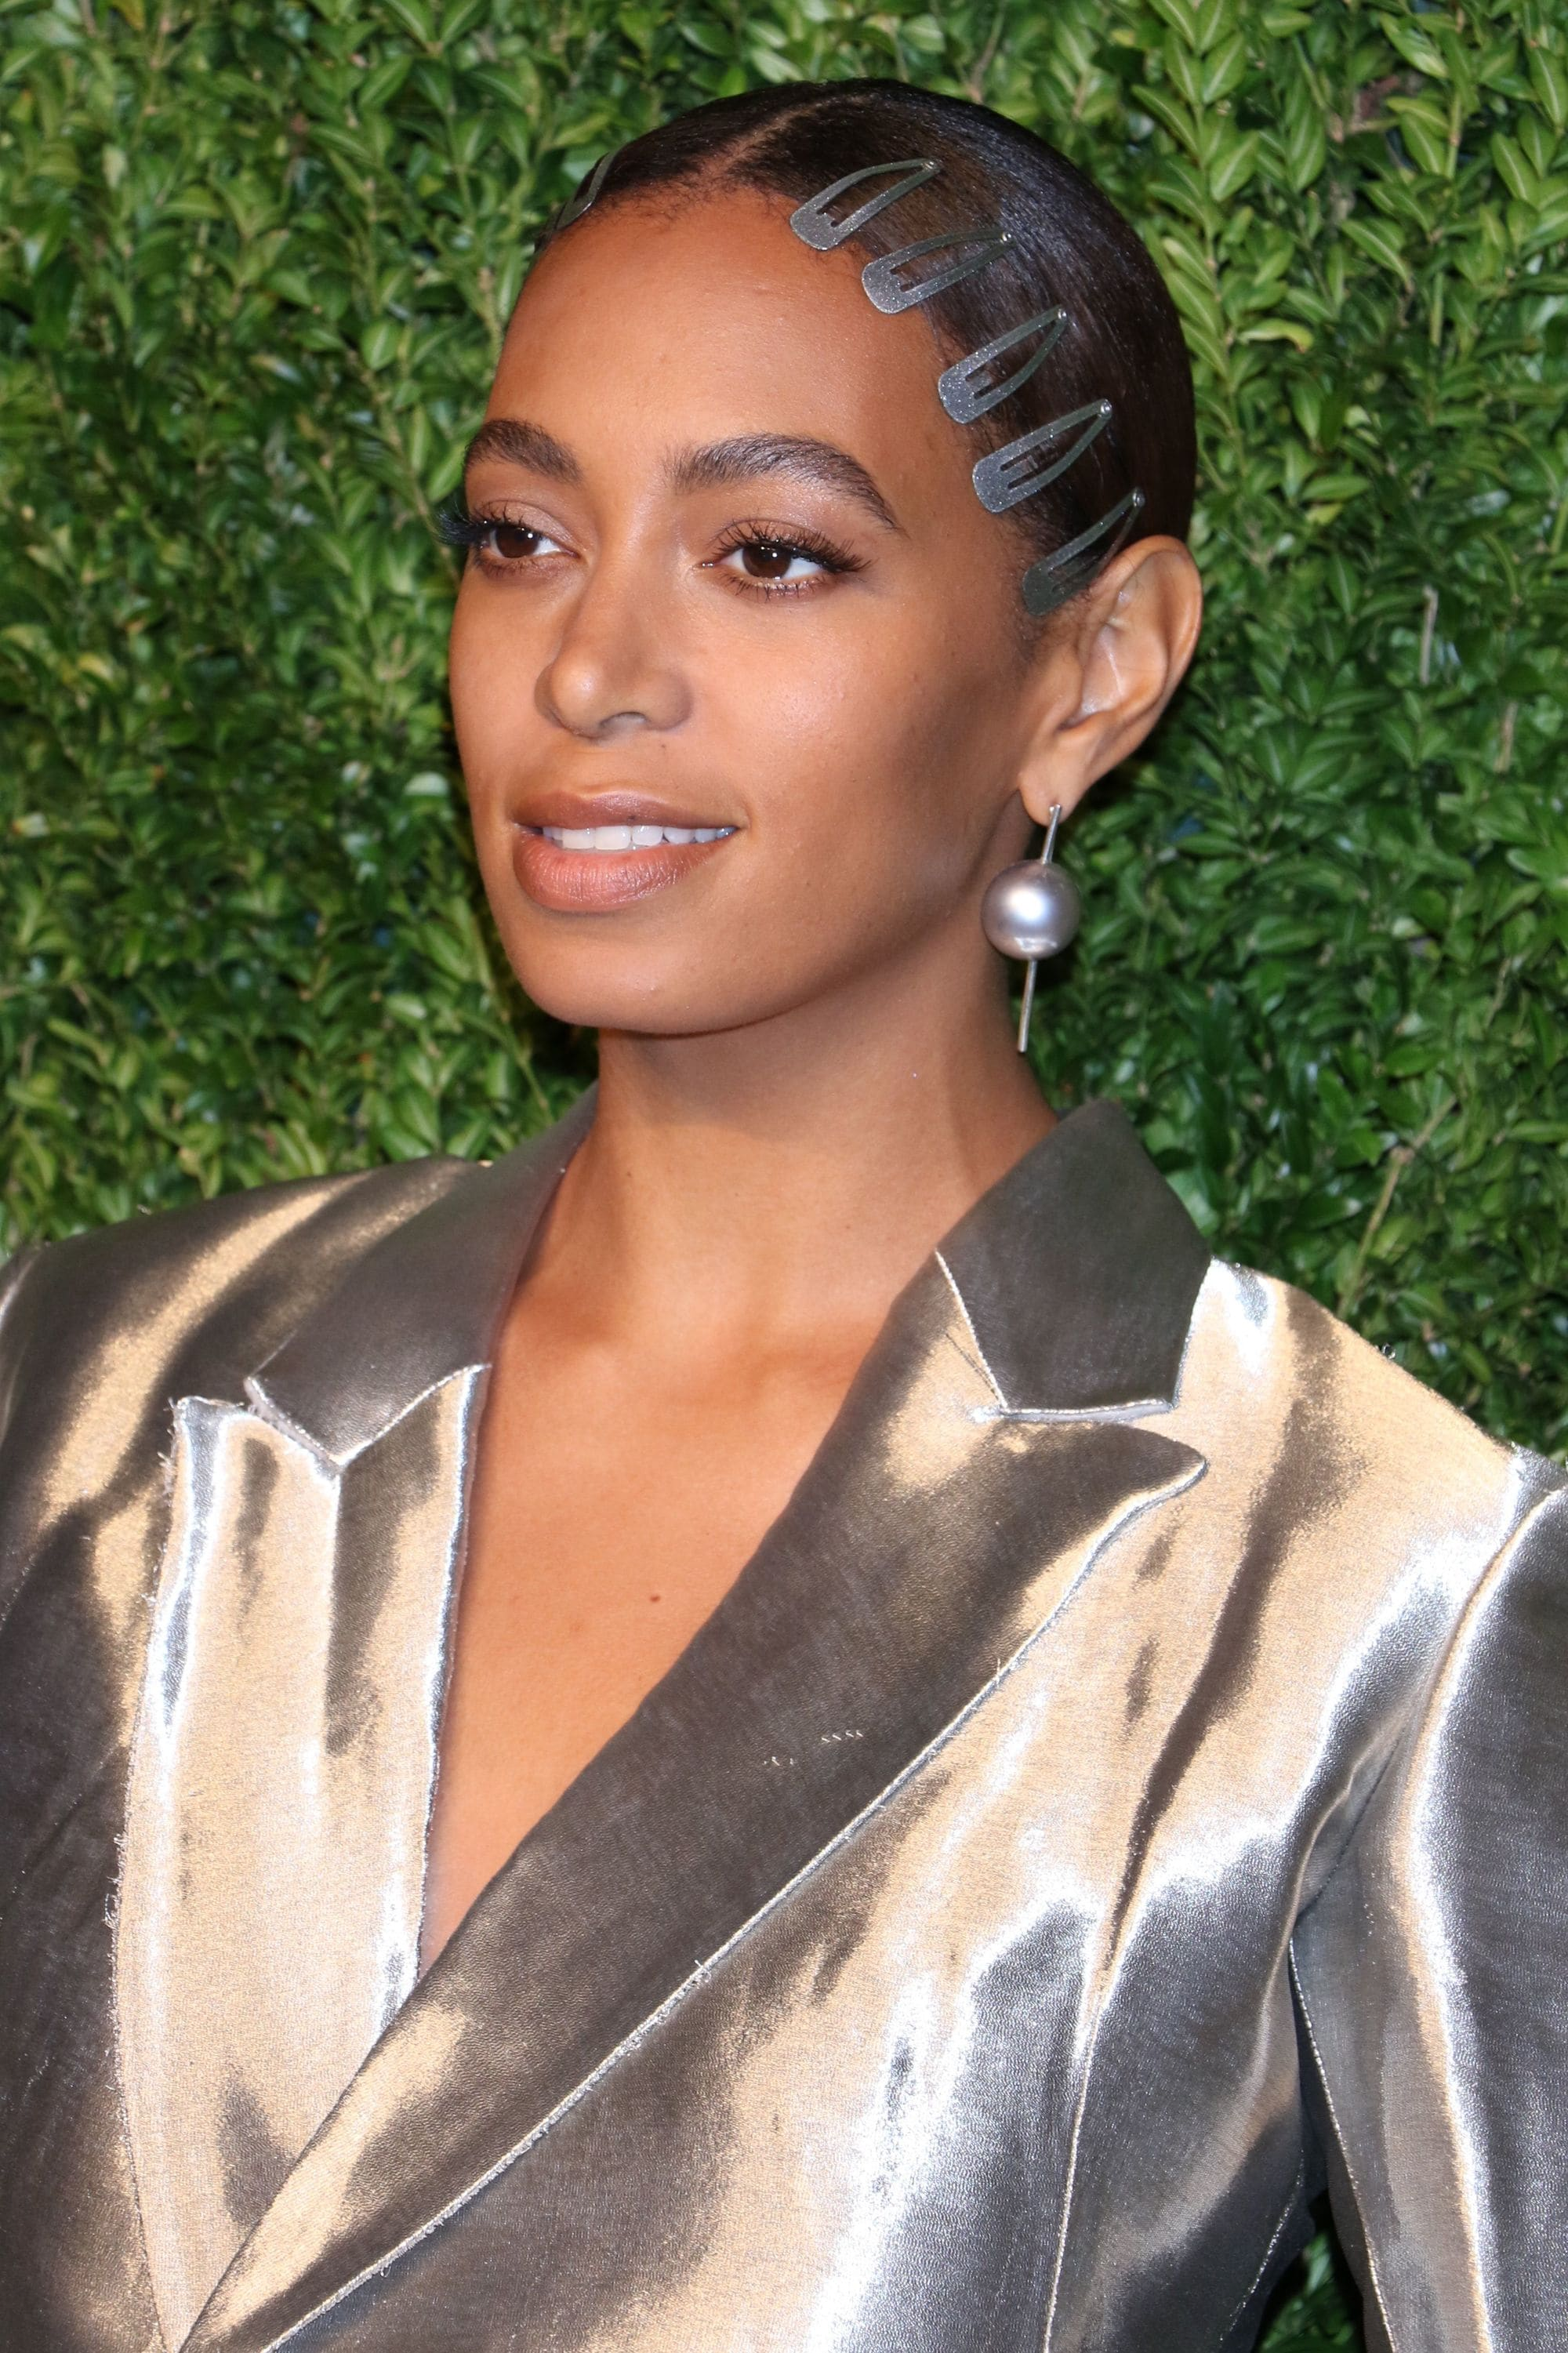 solange knowles wears brown hair in smooth back updo with hair clips along hairline and metallic blazer